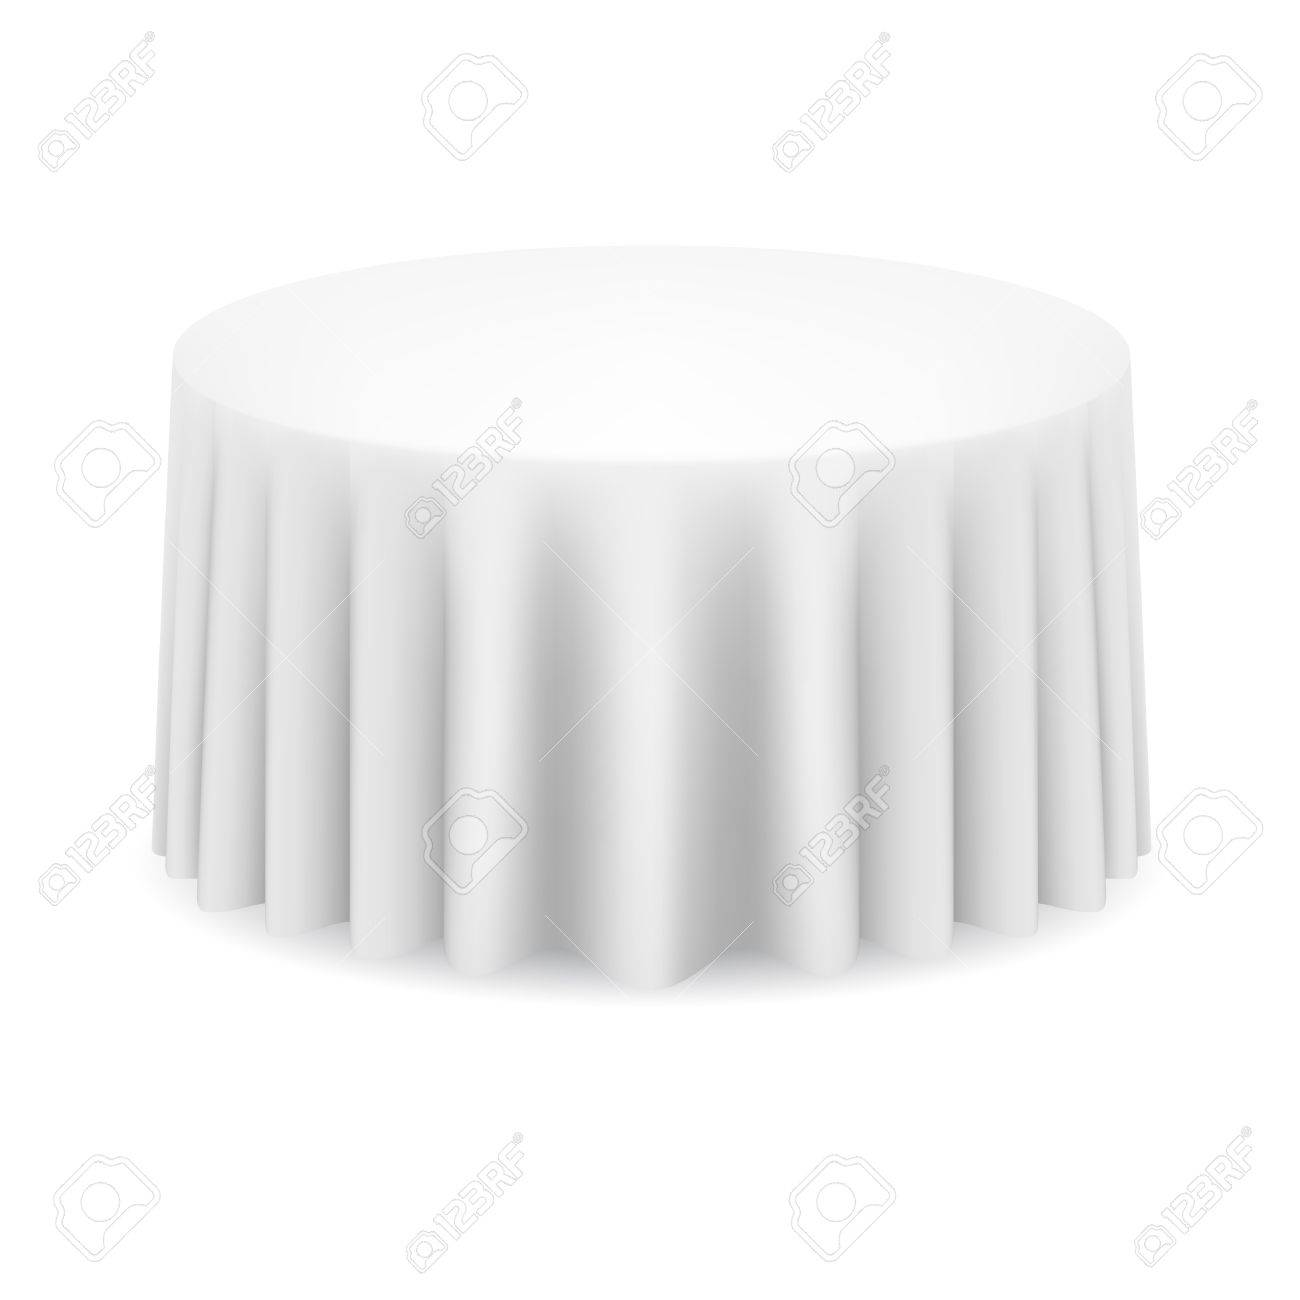 White Round Table With Tablecloth Illustration On White Royalty - Round table clip art